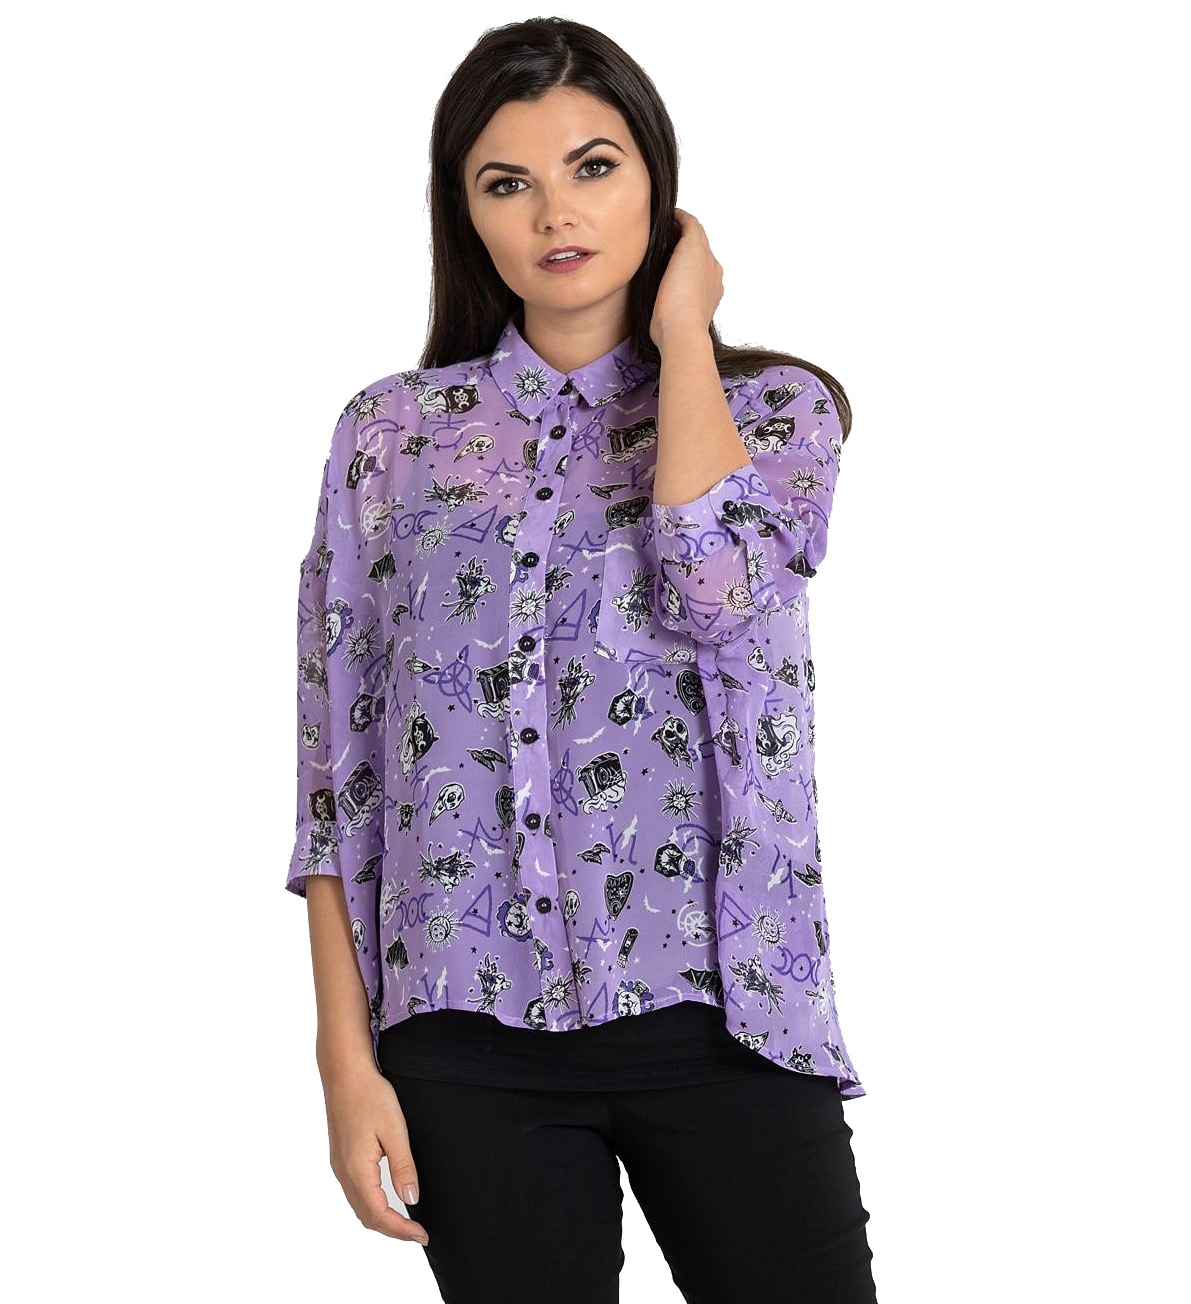 Hell-Bunny-Shirt-Top-Gothic-Witchy-ELSPETH-Lavender-Purple-Blouse-All-Sizes thumbnail 11